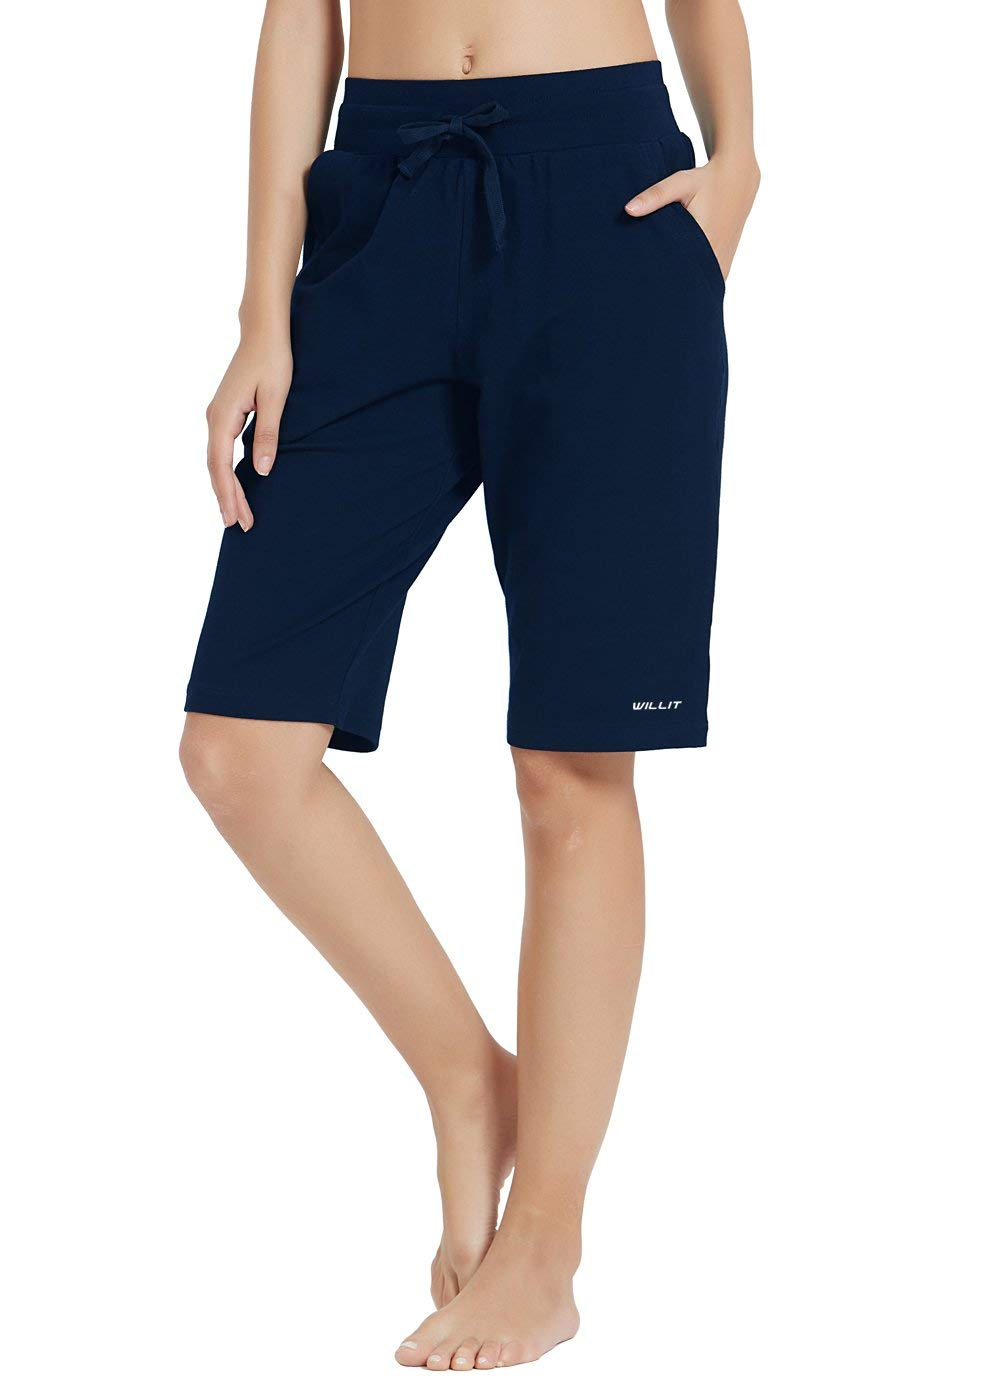 Willit Womens 5 Yoga Lounge Shorts Bermuda Jersey Cotton Shorts Pajama Walking Casual Shorts Drawstring Pockets